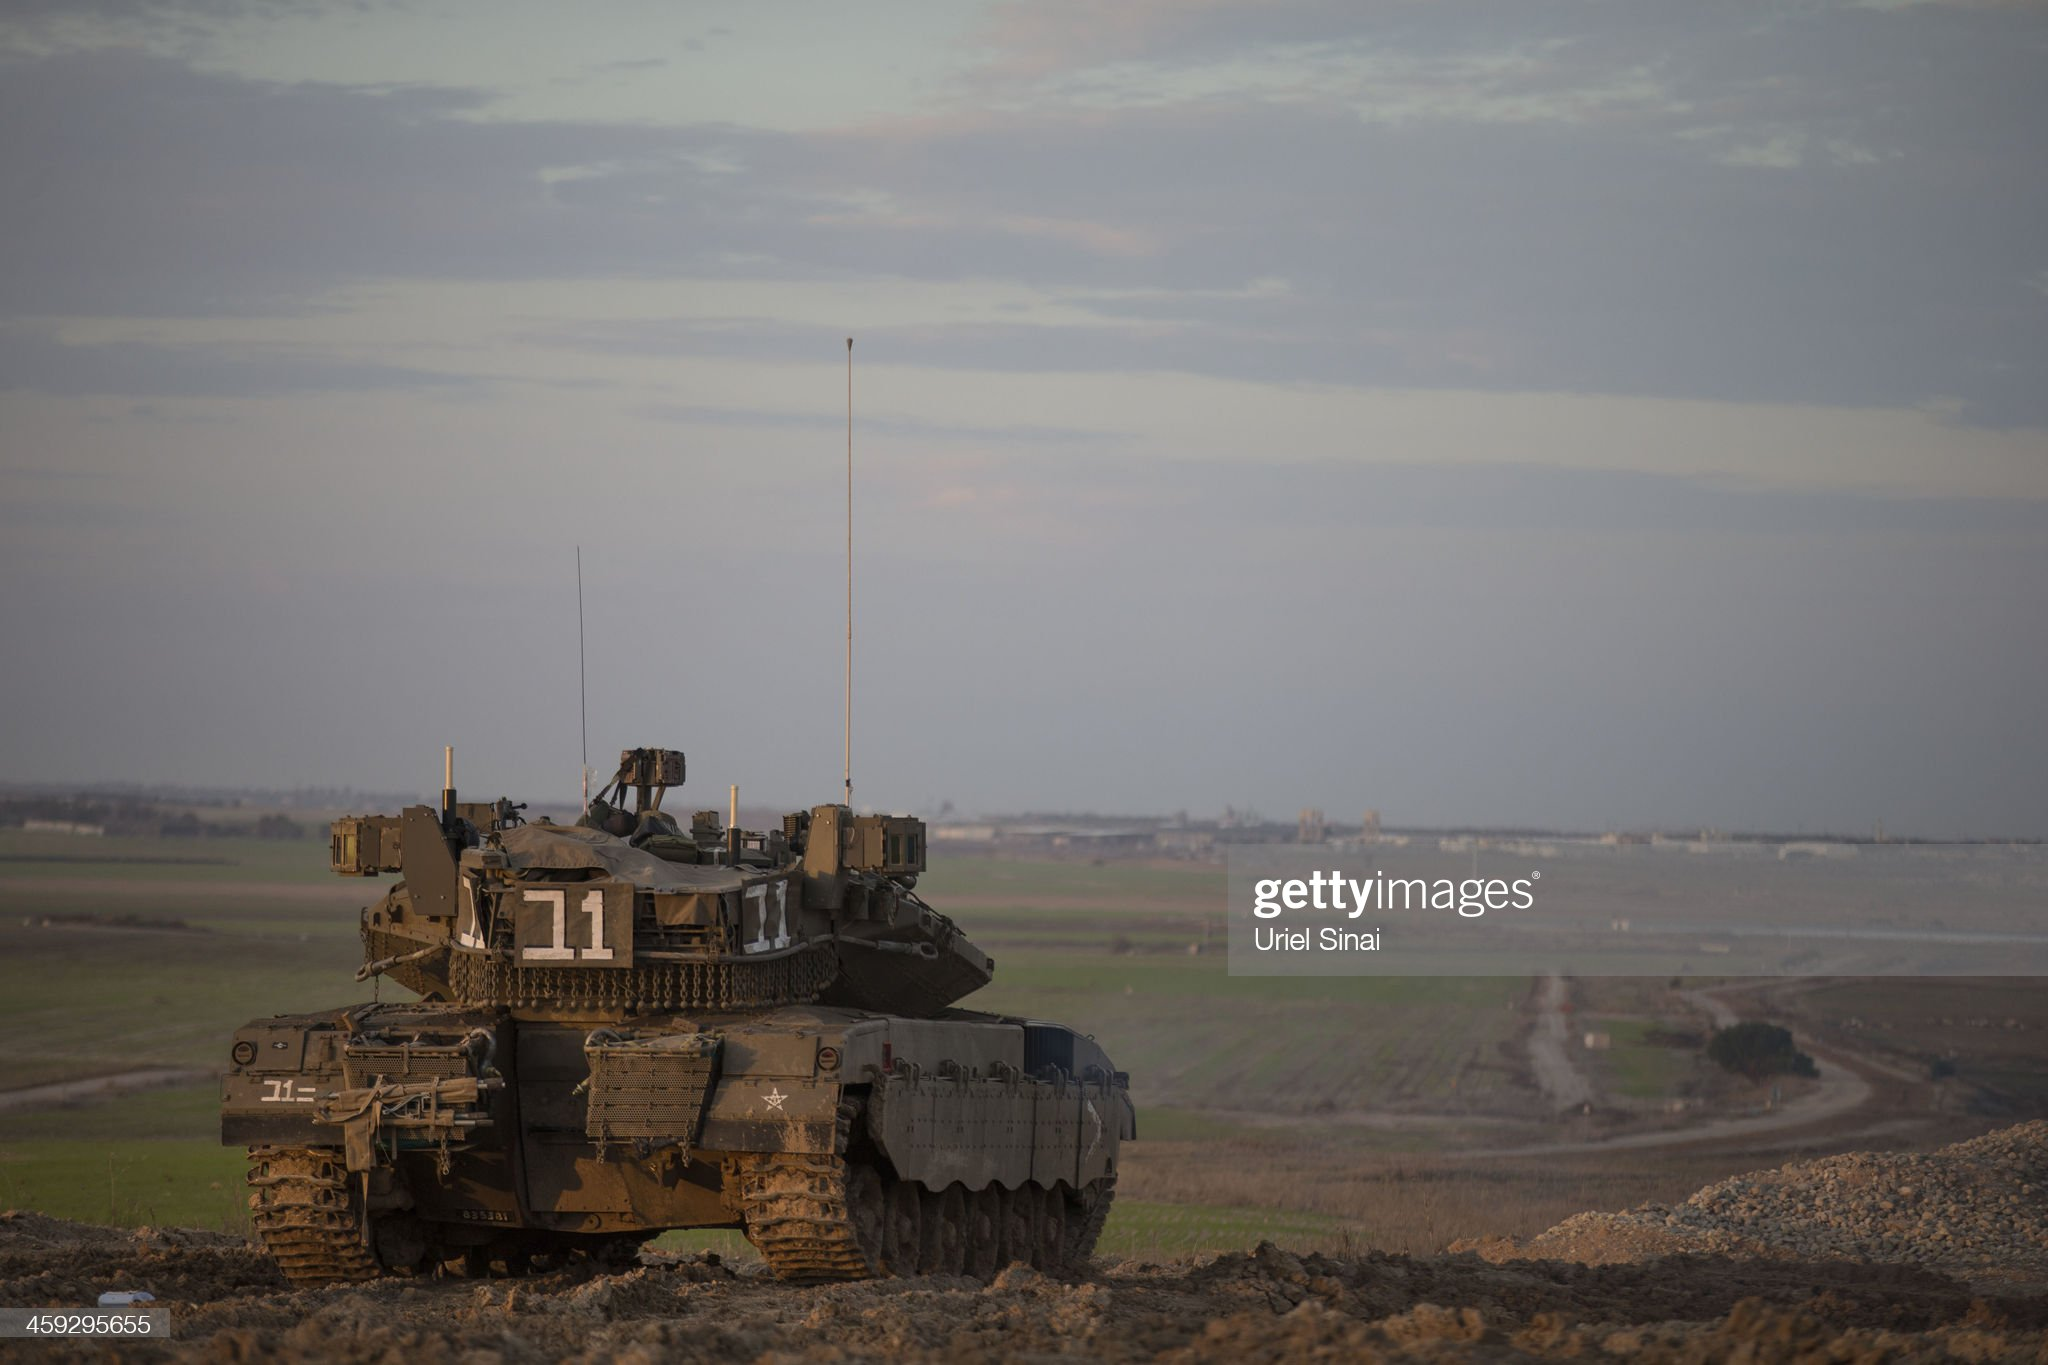 https://media.gettyimages.com/photos/an-israeli-tank-takes-a-position-on-december-25-2013-along-the-with-picture-id459295655?s=2048x2048